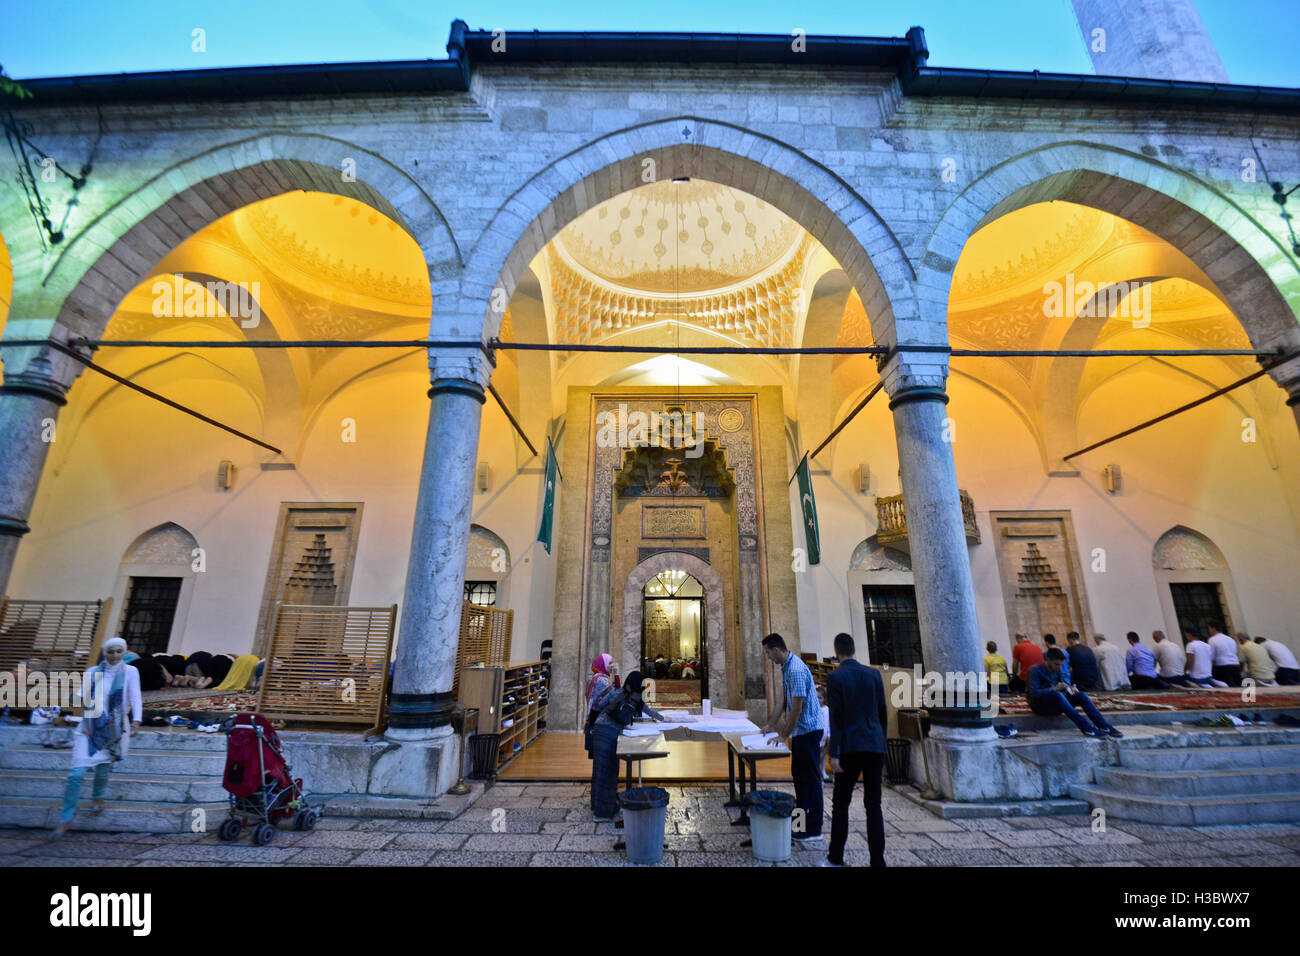 Muslim women (left) and men (right) praying separated in the Gazi Husrev-beg Mosque, Sarajevo, during Ramadan - Stock Image